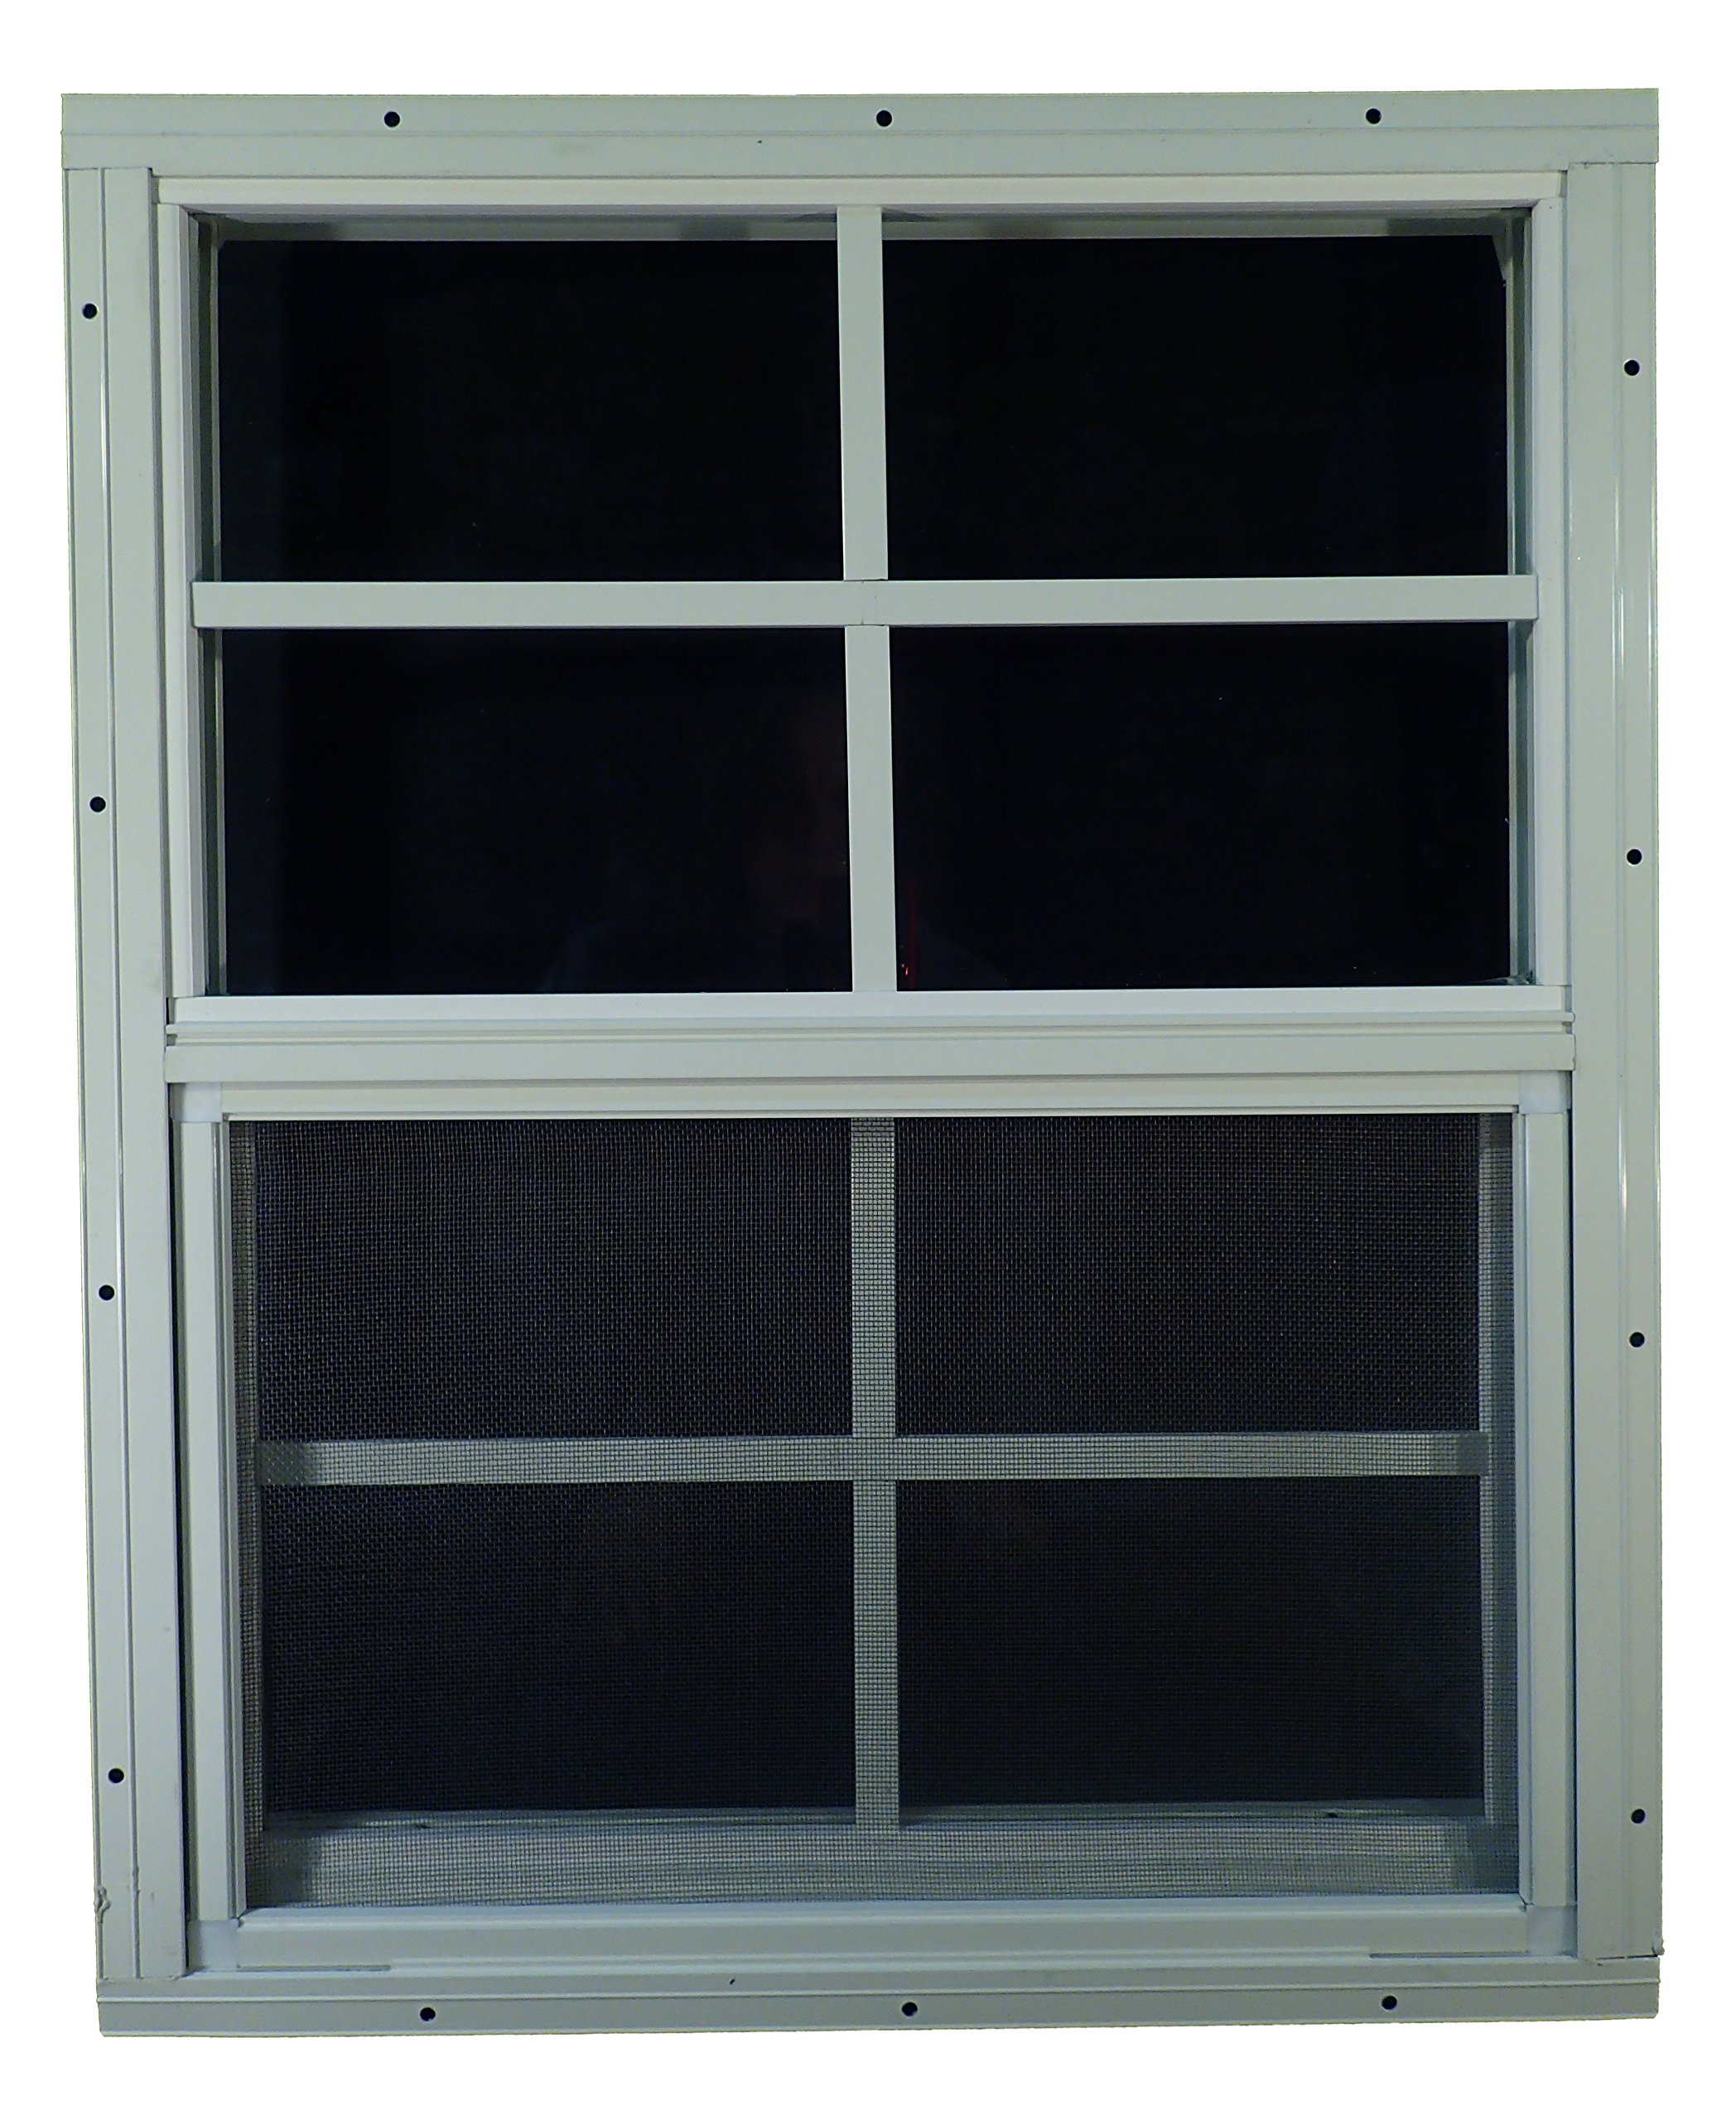 Shed Windows 18'' W x 23'' H - Flush Mount - Playhouse Windows (White)